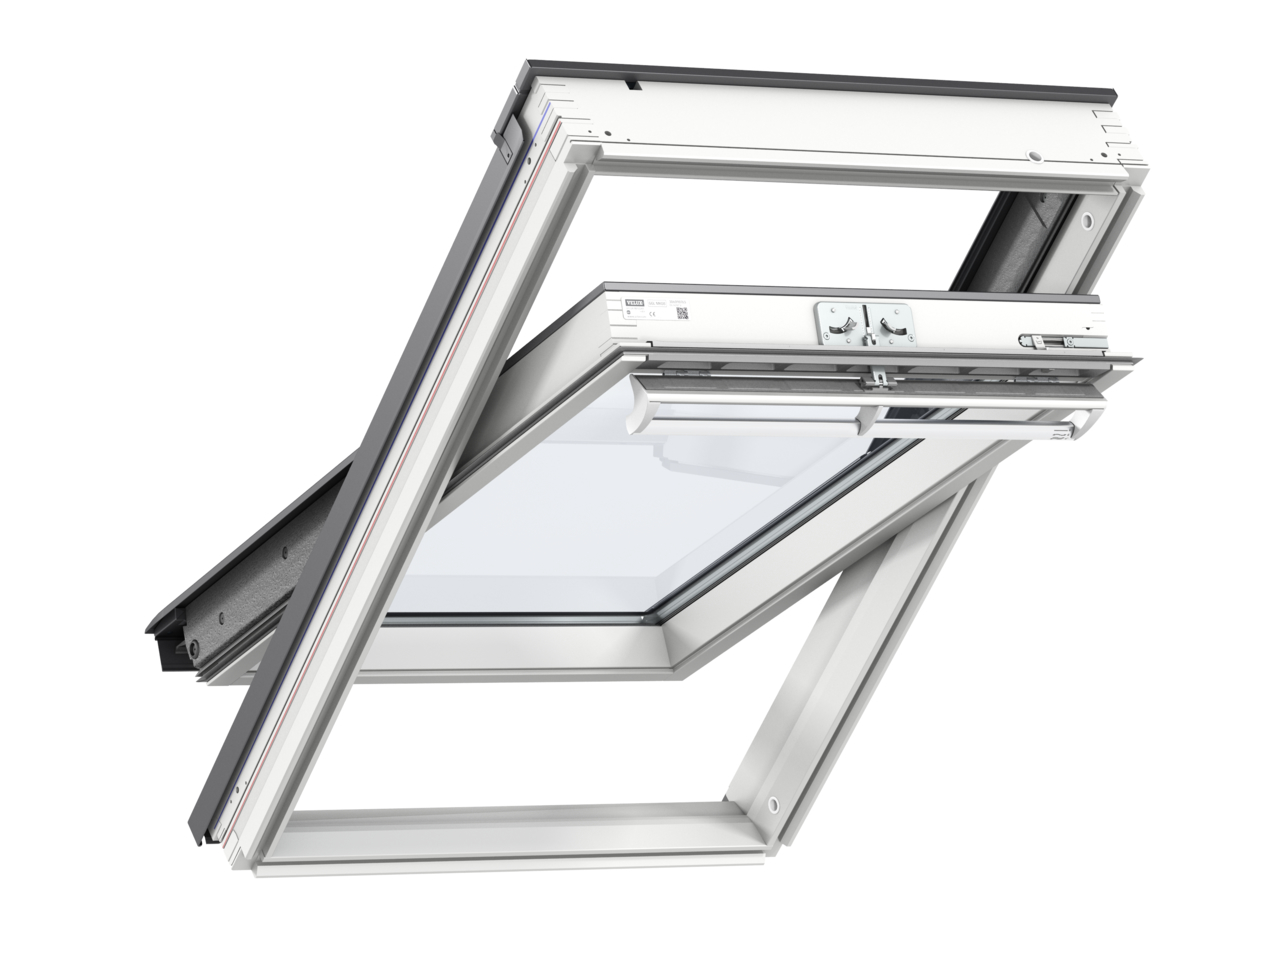 Velux GGL MK04 780 x 980mm Centre Pivot 60Pane Roof Window - White Painted